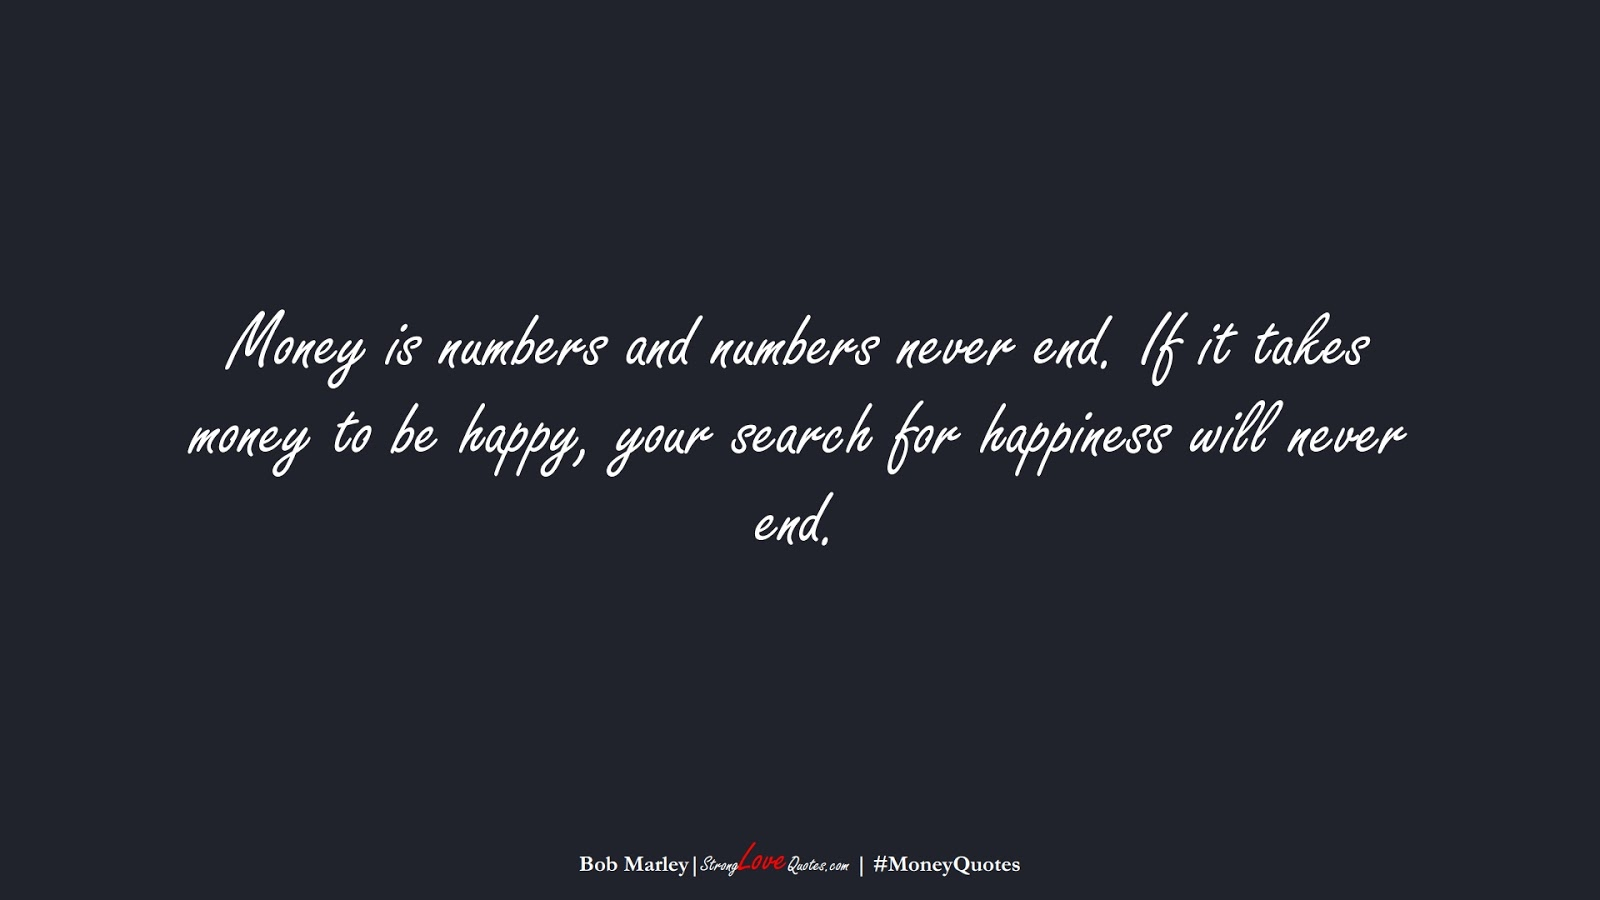 Money is numbers and numbers never end. If it takes money to be happy, your search for happiness will never end. (Bob Marley);  #MoneyQuotes